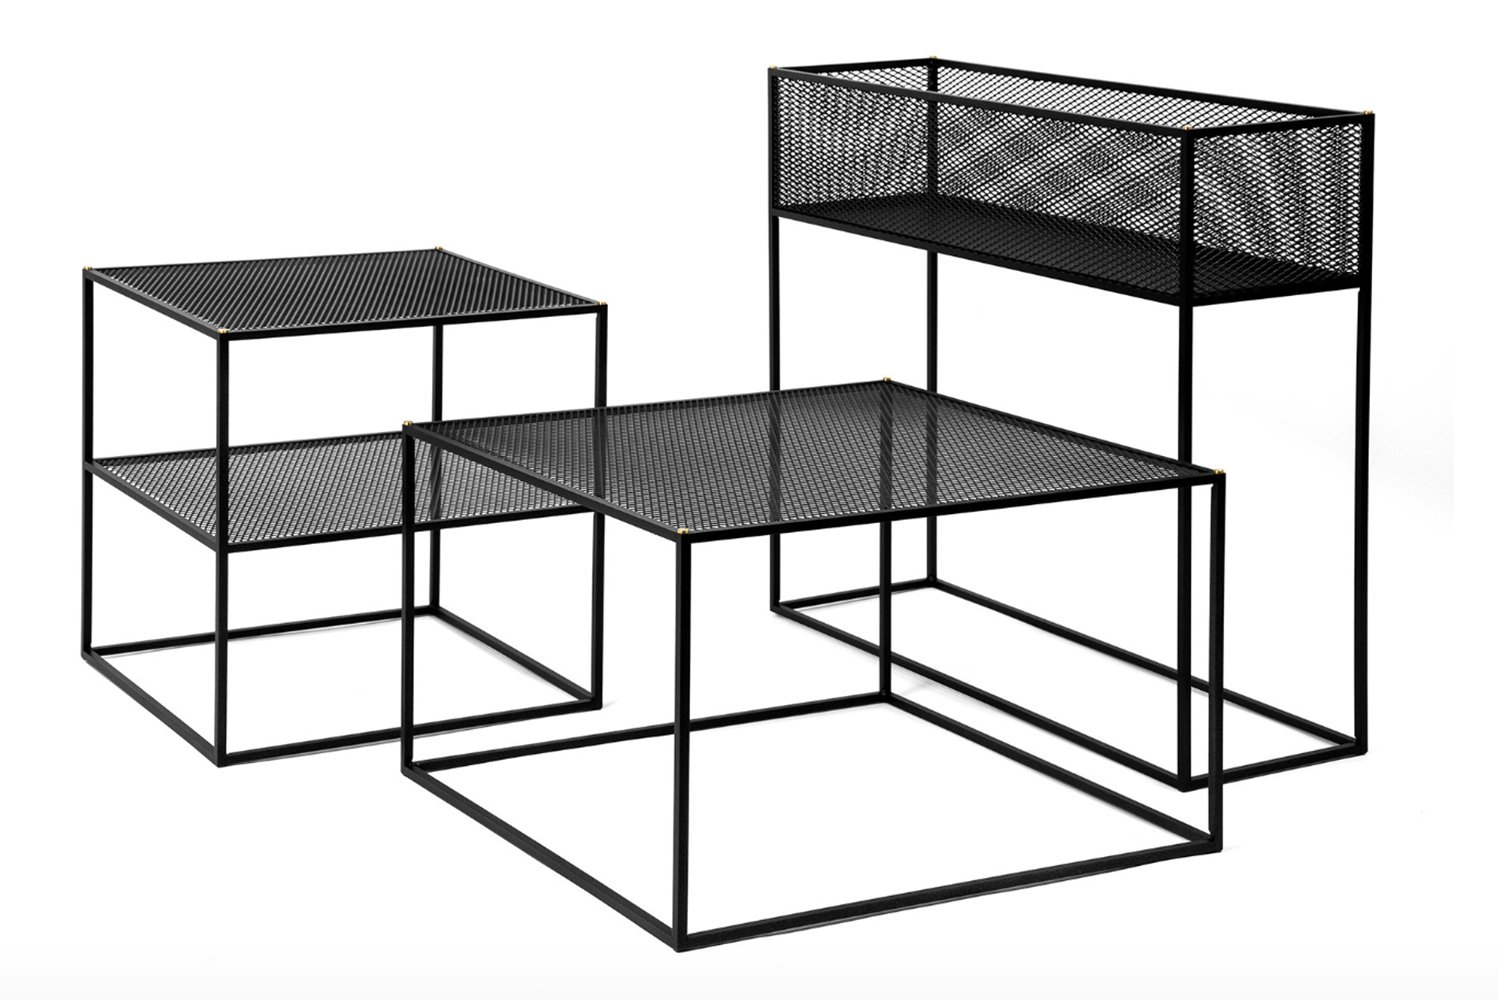 A collection of tables and planters, Meshed is made with practicality and design in mind.